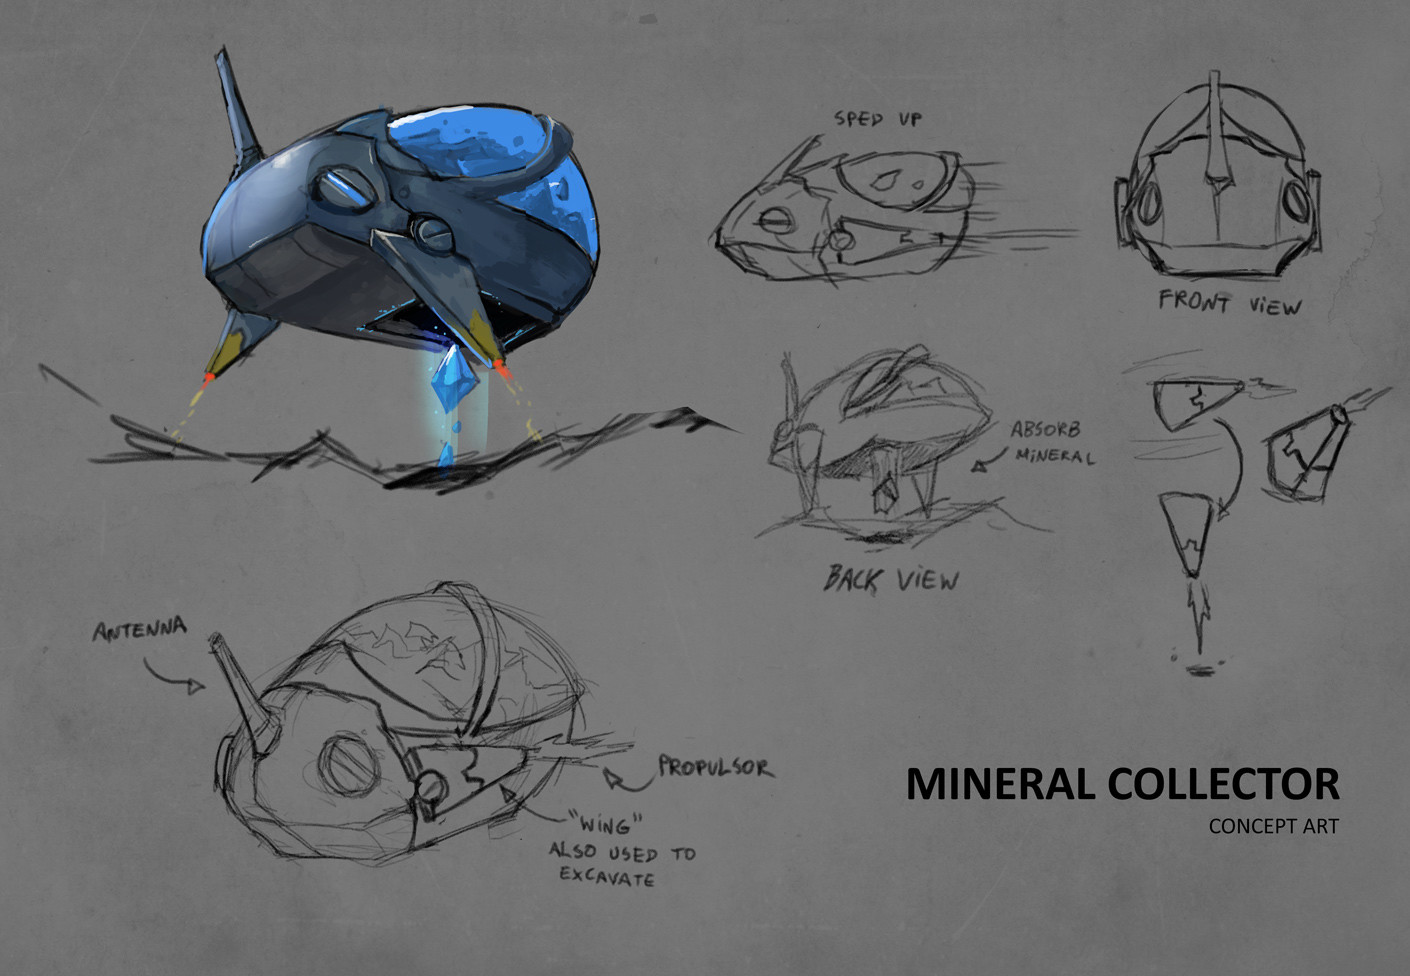 Concept - Mineral Collector